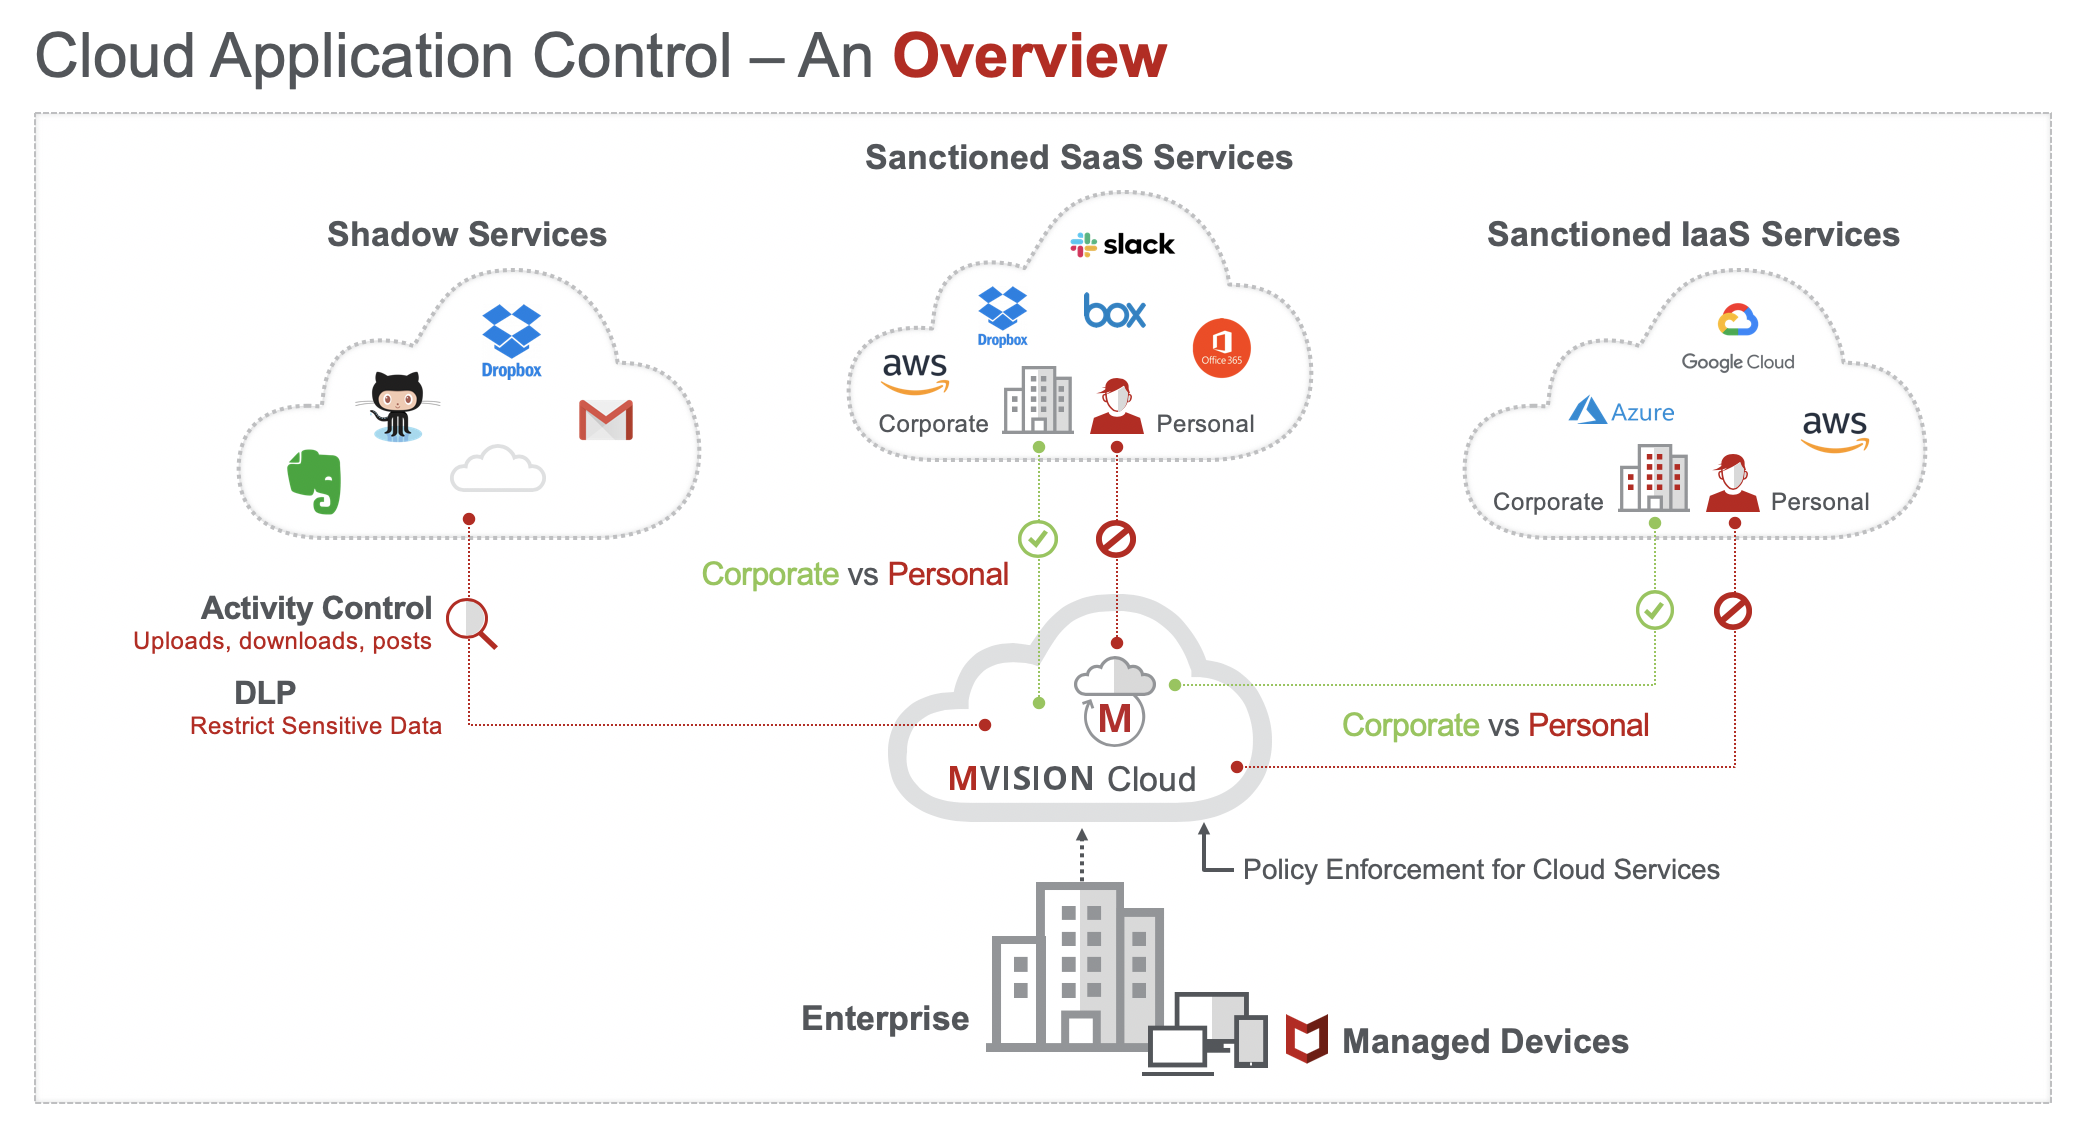 McAfee MVISION Cloud for Shadow IT | Skyhigh Networks